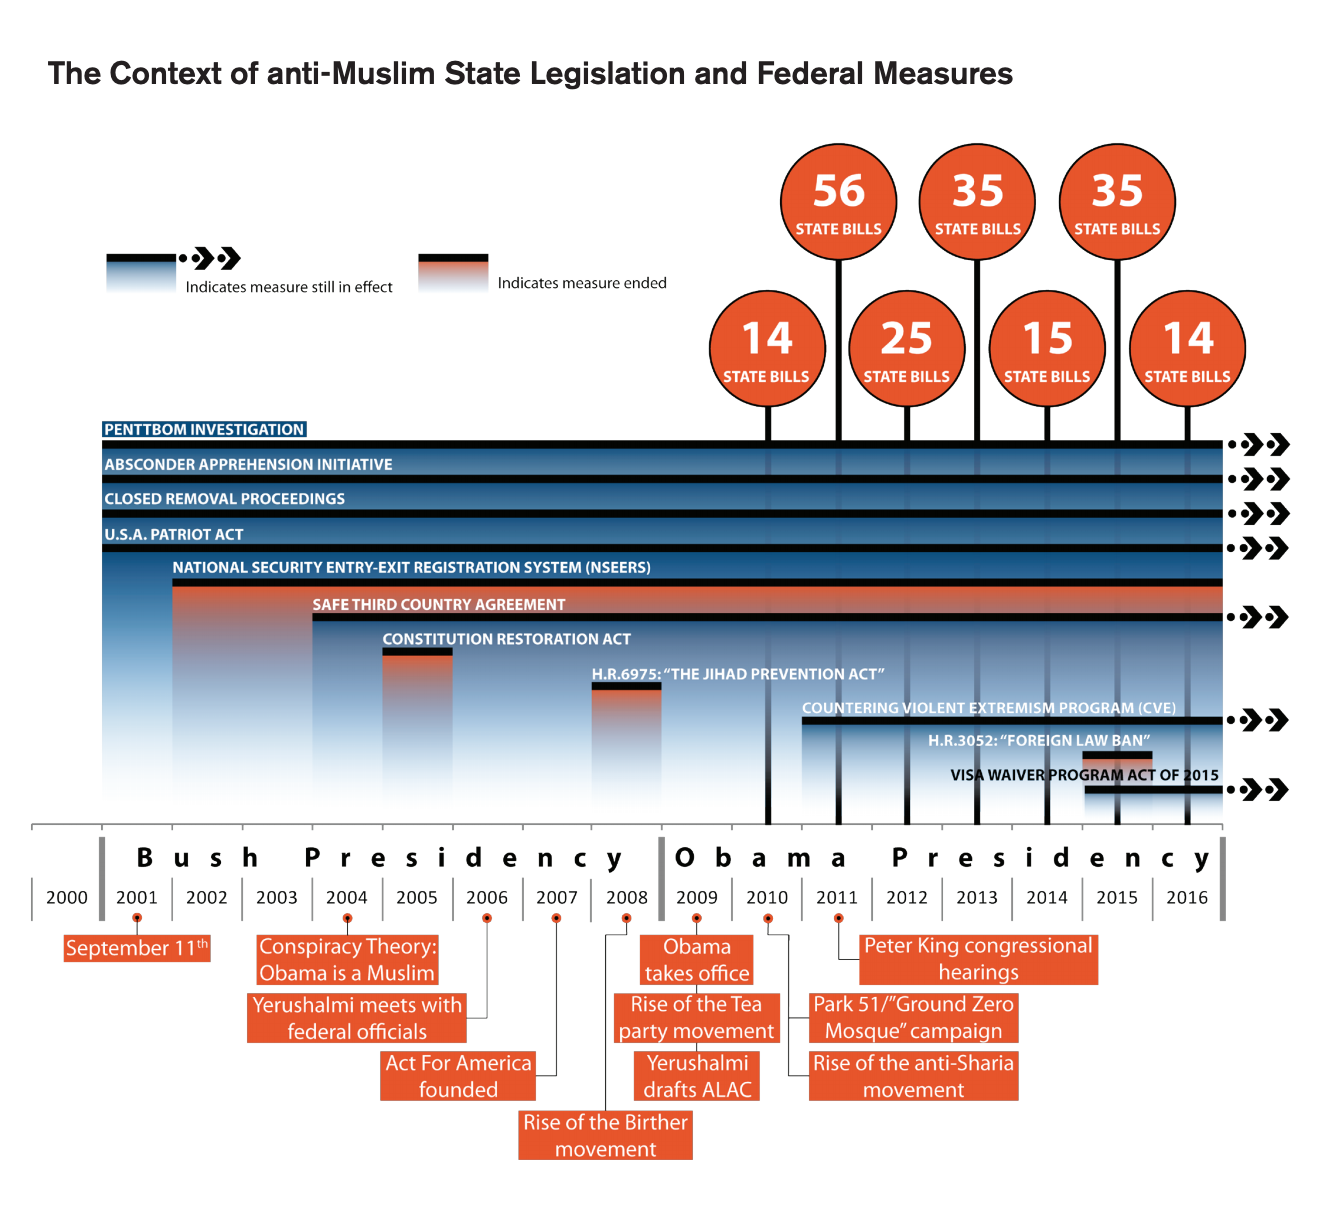 This infographic includes a table of the context of anti-Muslim state legislation and federal measures. The blue sections with arrows indicate that the measure is still in effect while the red sections indicate that the measure has ended.